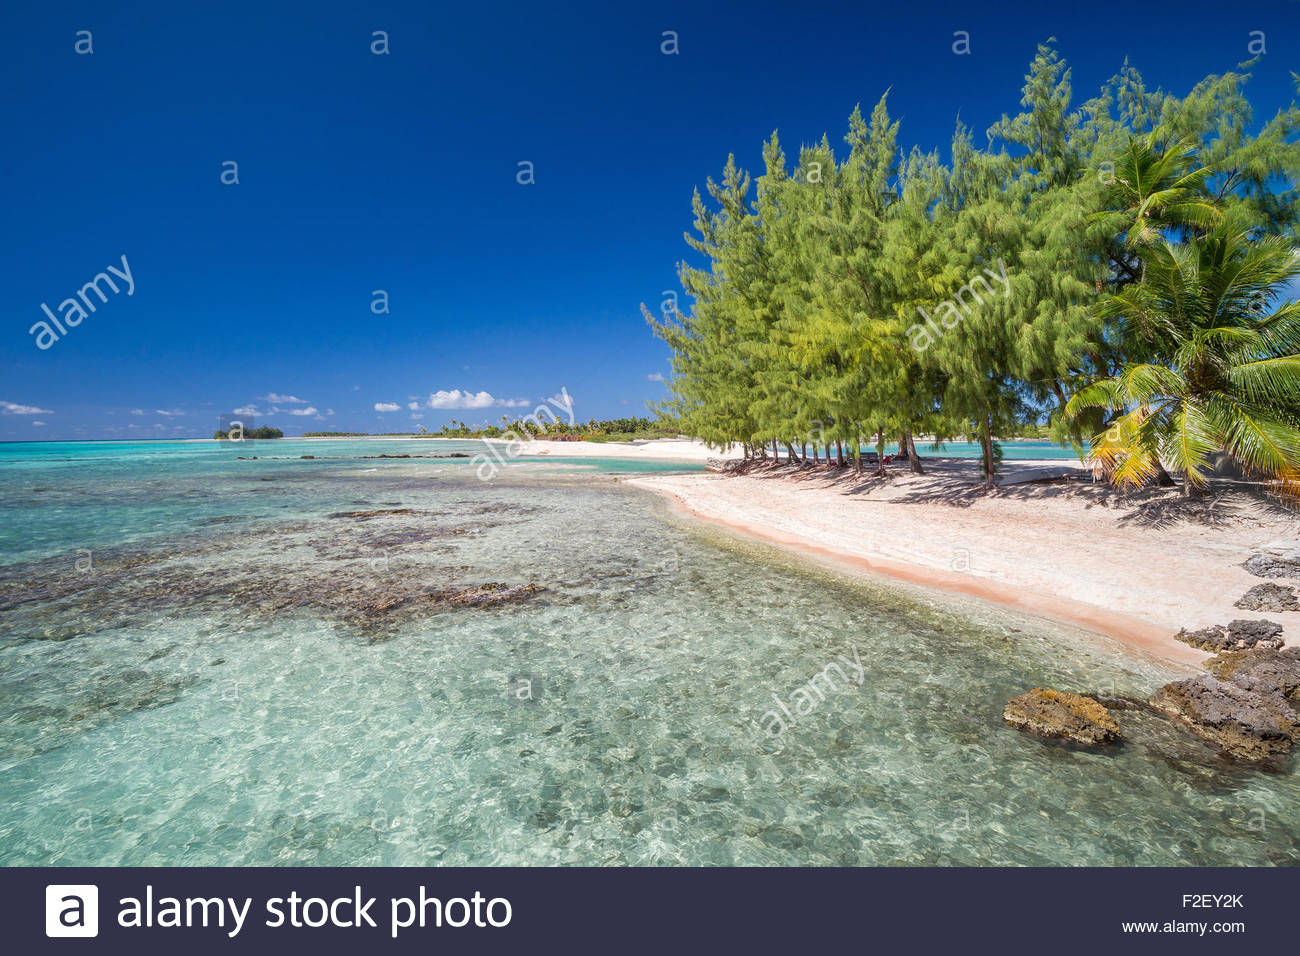 Tikehau (French Polynesia) Stock Photo